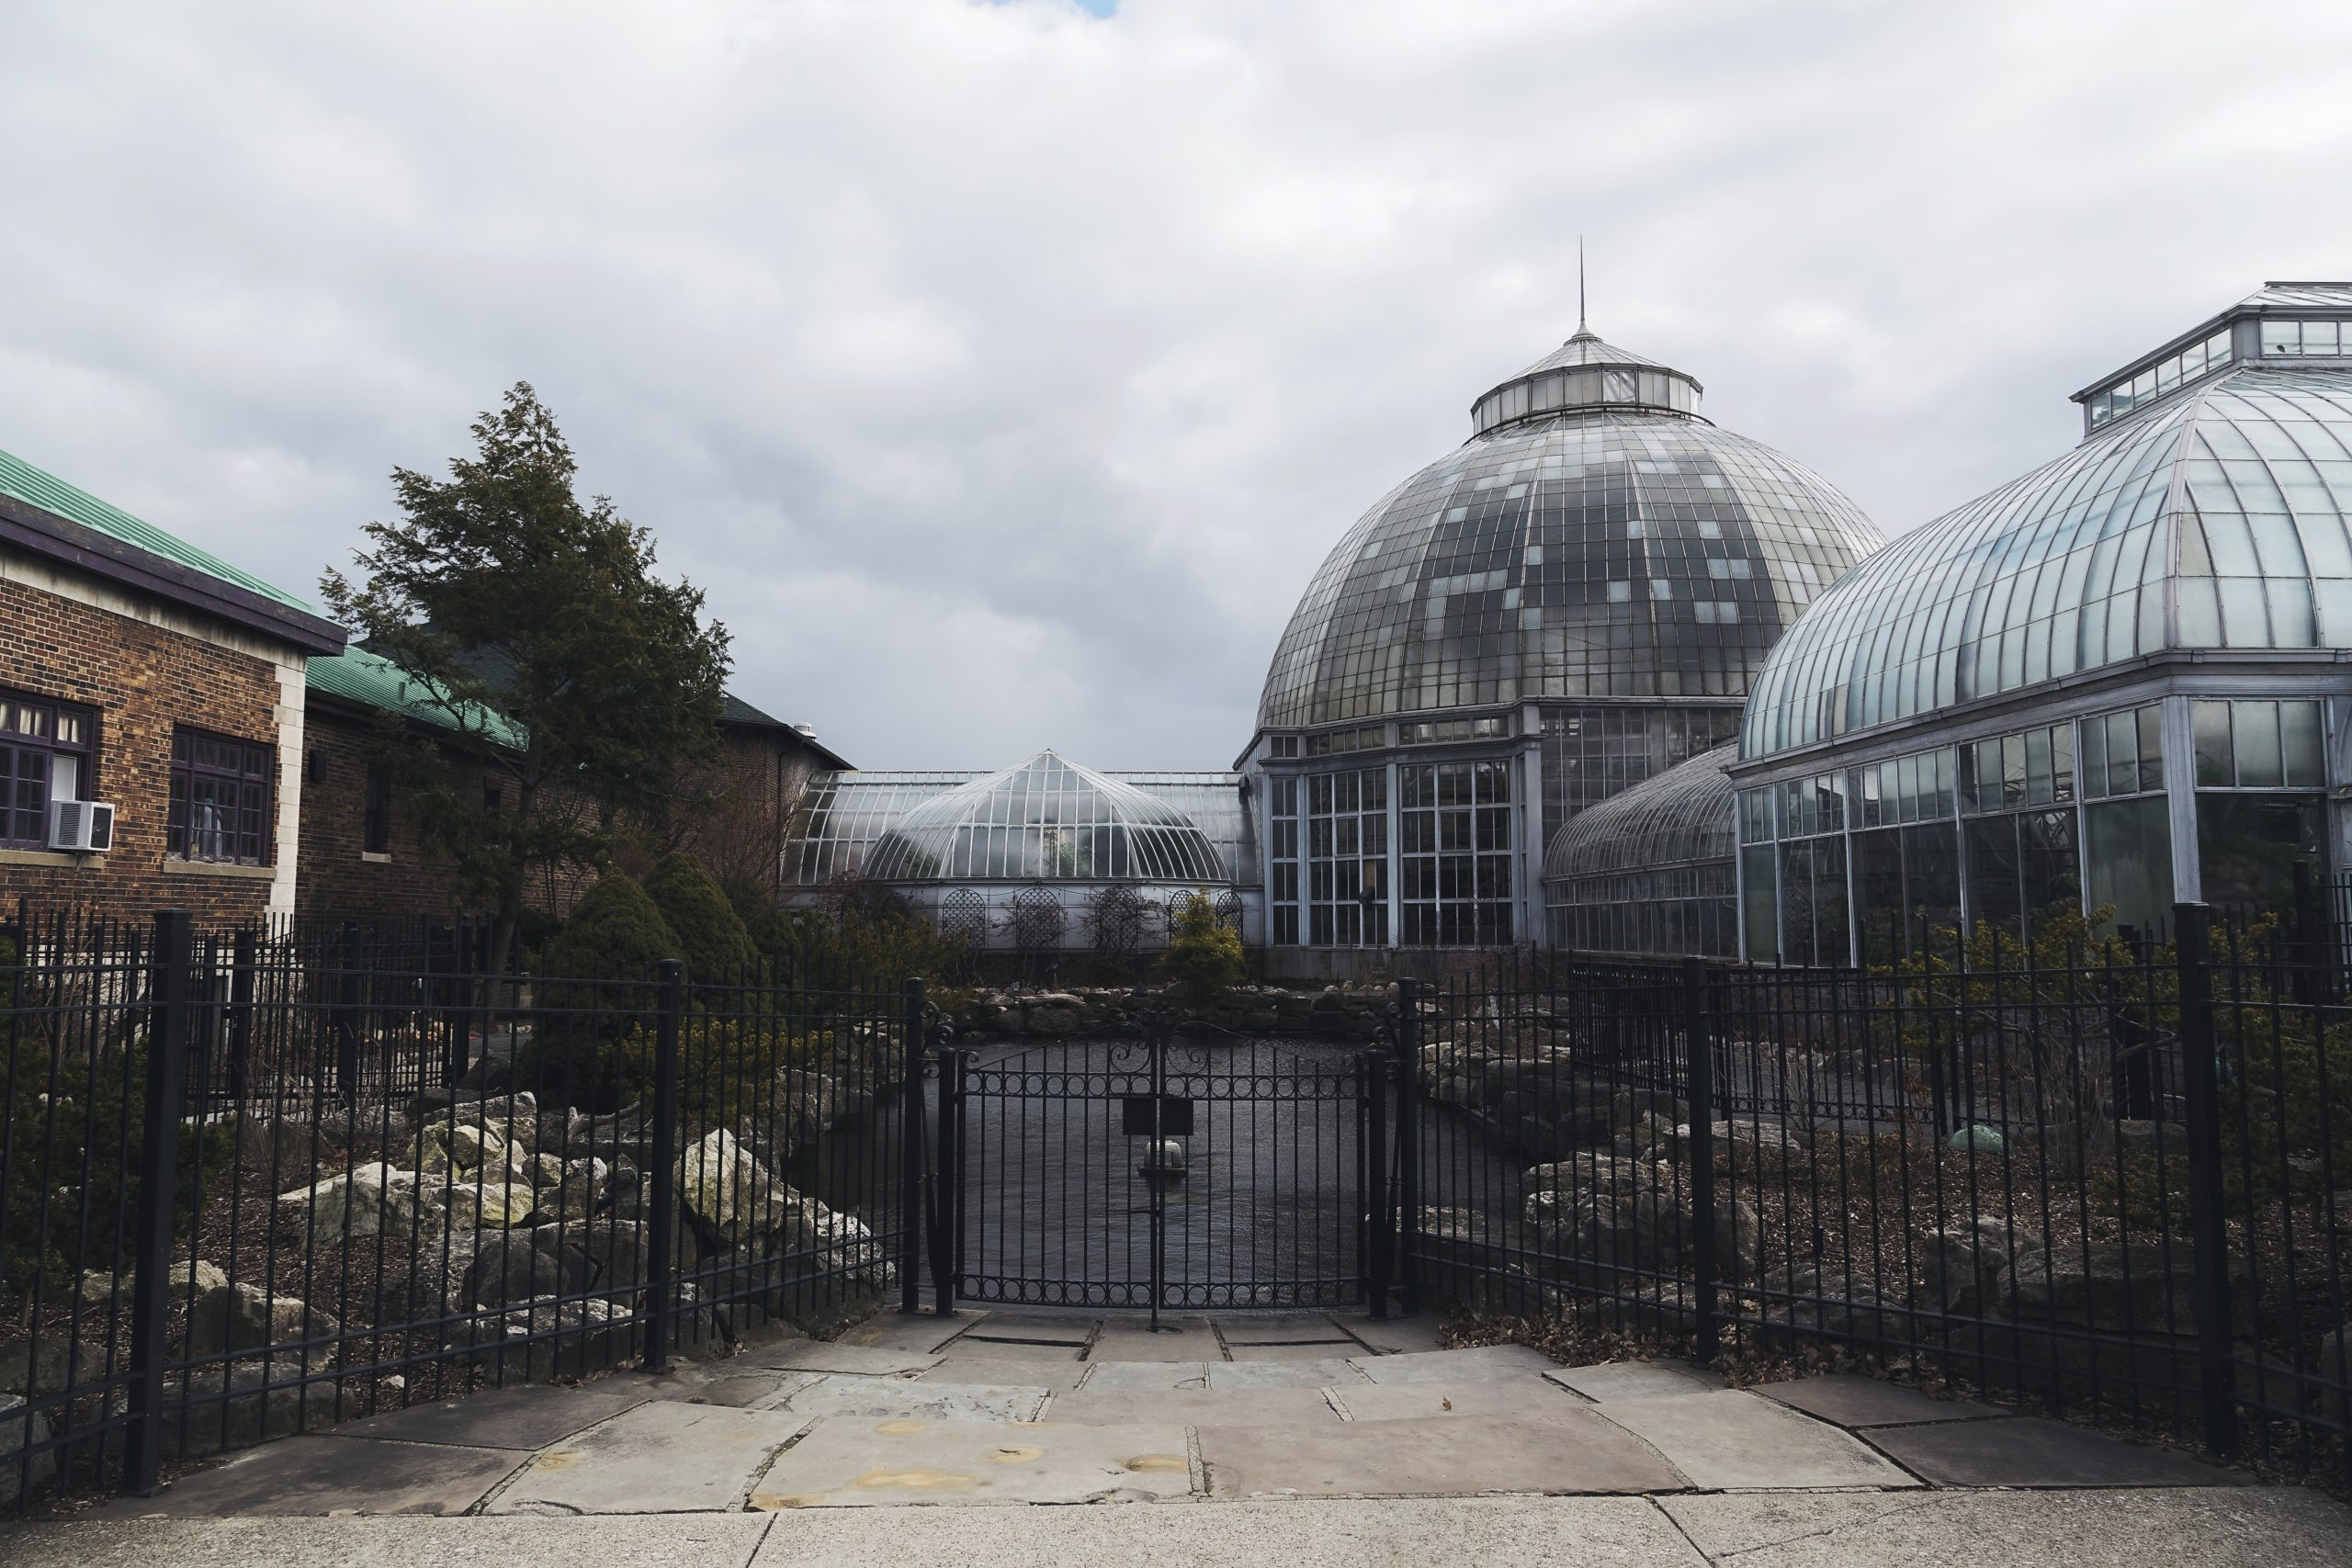 An entrance to the gated courtyard of the conservatory